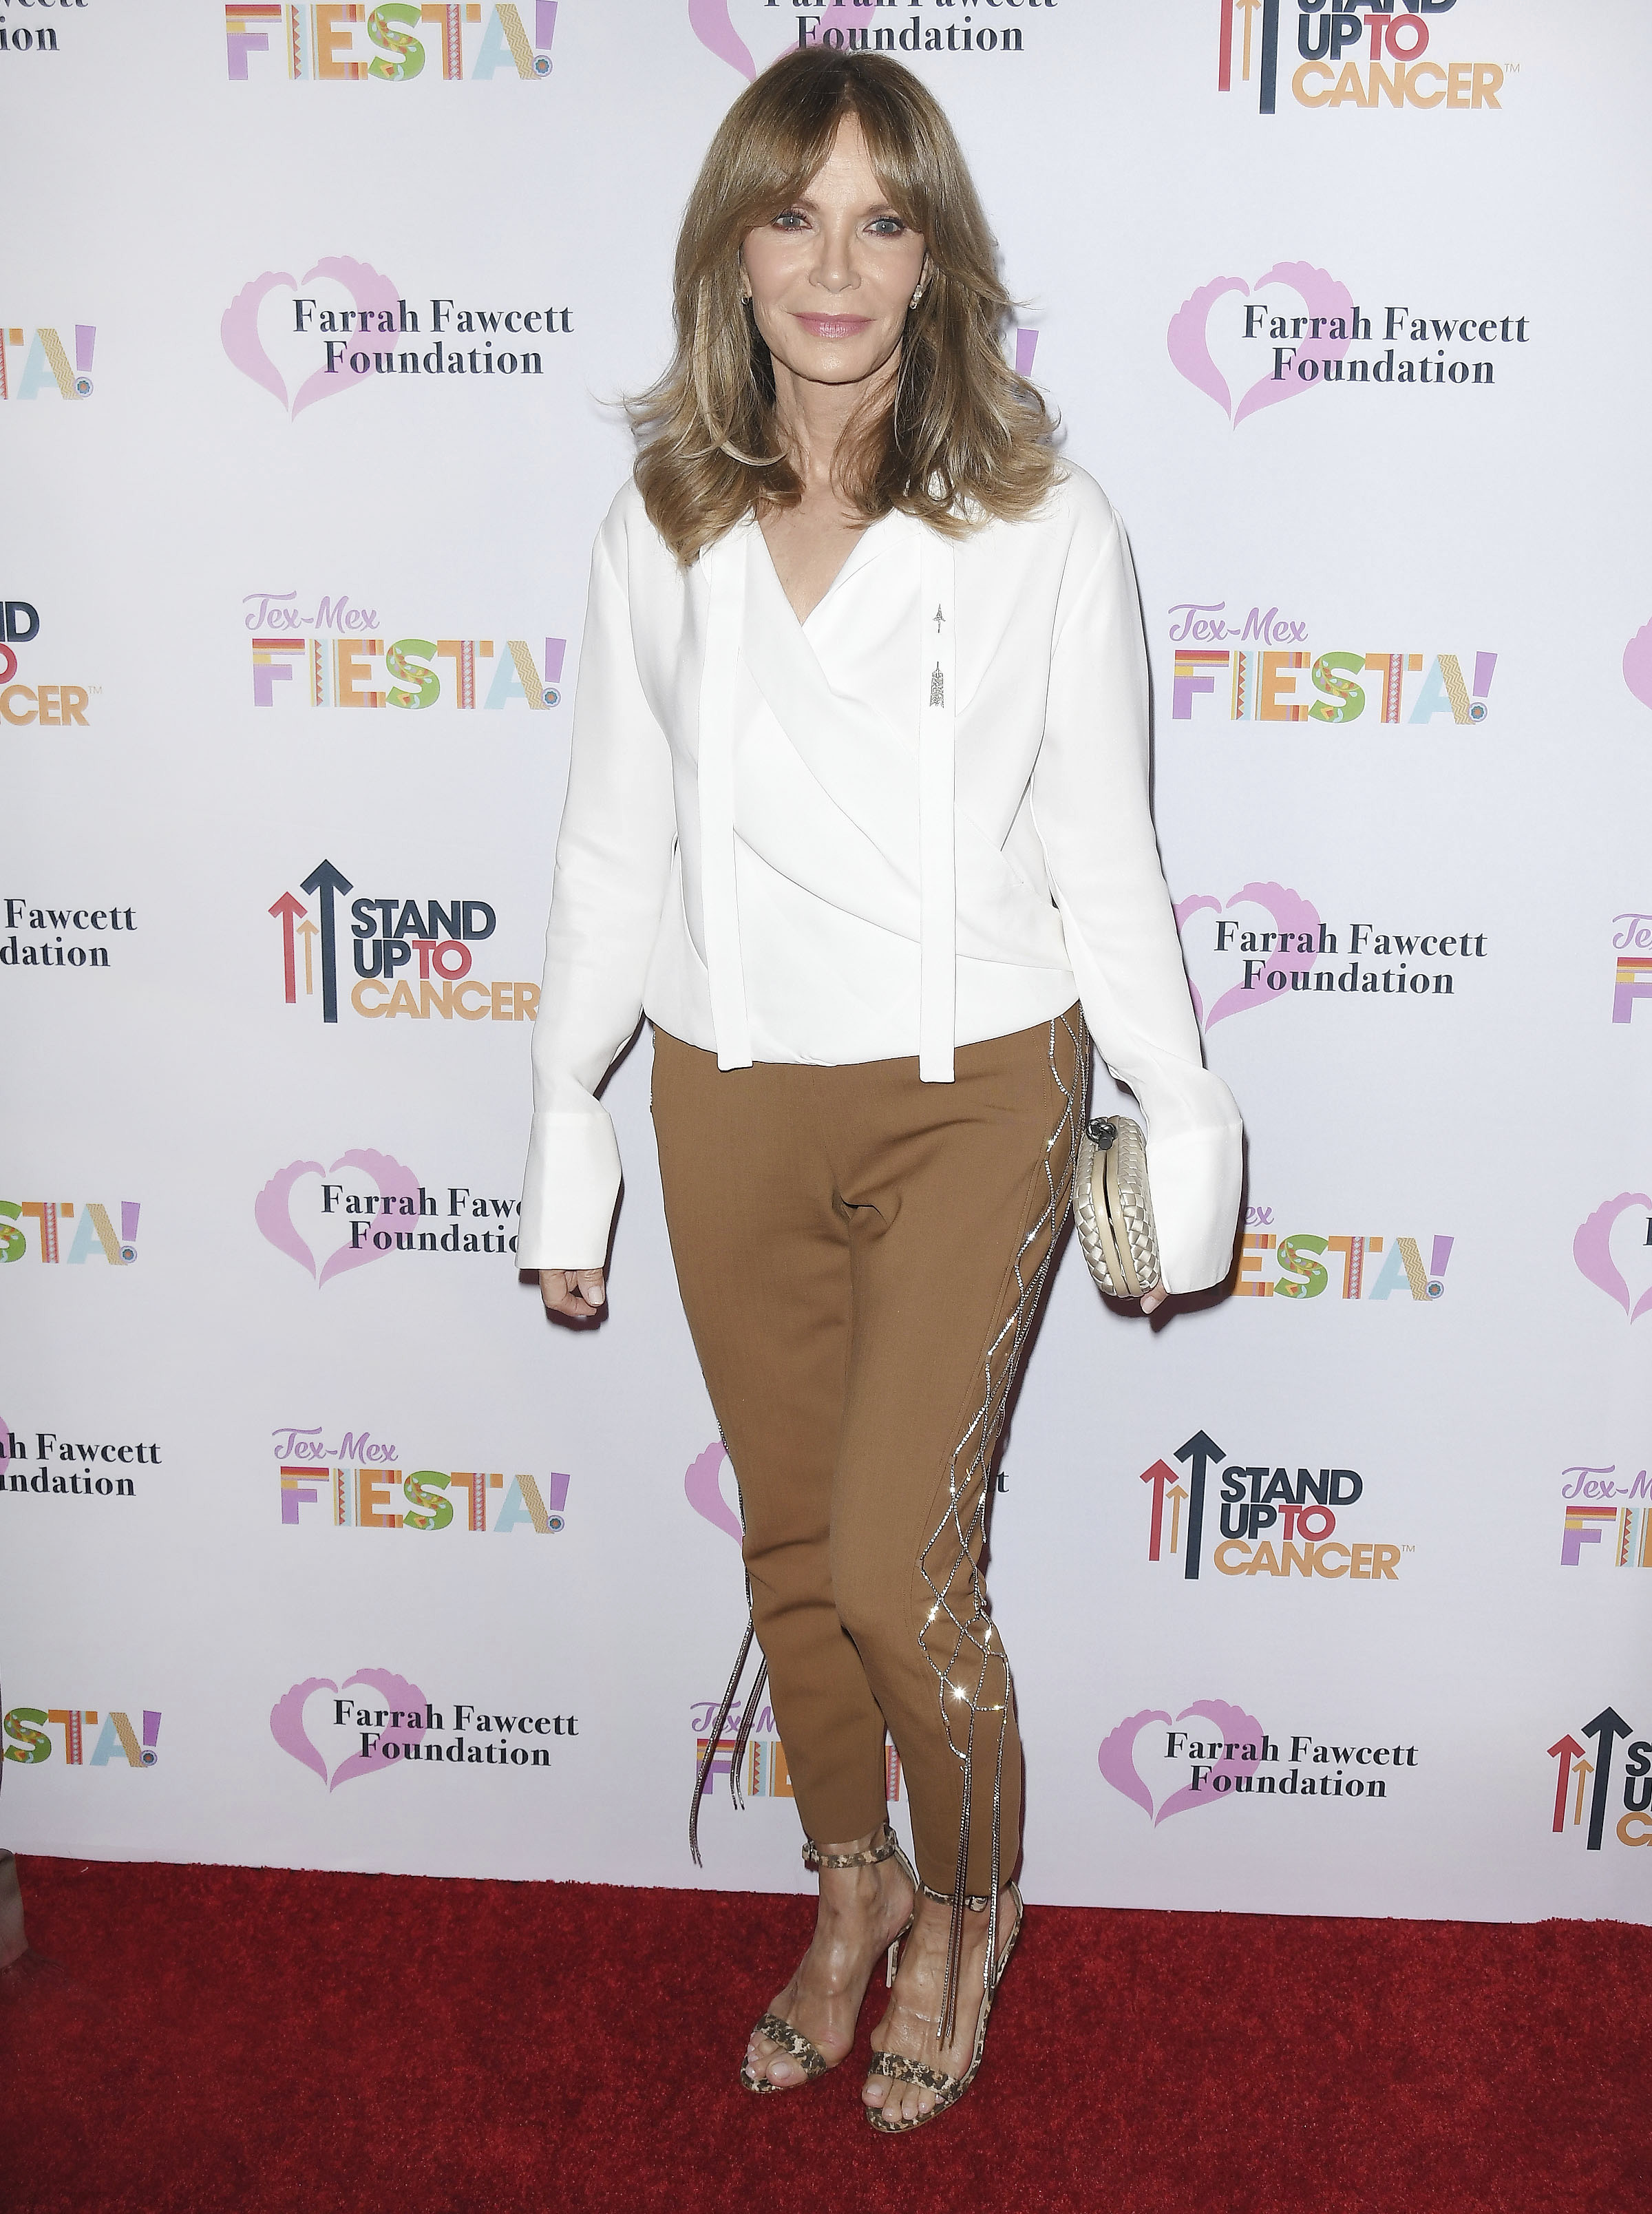 Jaclyn Smith arrives at the Farrah Fawcett Foundation's TEX-MEX FIESTA held at the Wallis Annenberg Center for the Performing Arts in Beverly Hills, CA on Friday, September 6, 2019. (Photo By Sthanlee B. Mirador/Sipa USA)(Sipa via AP Images)